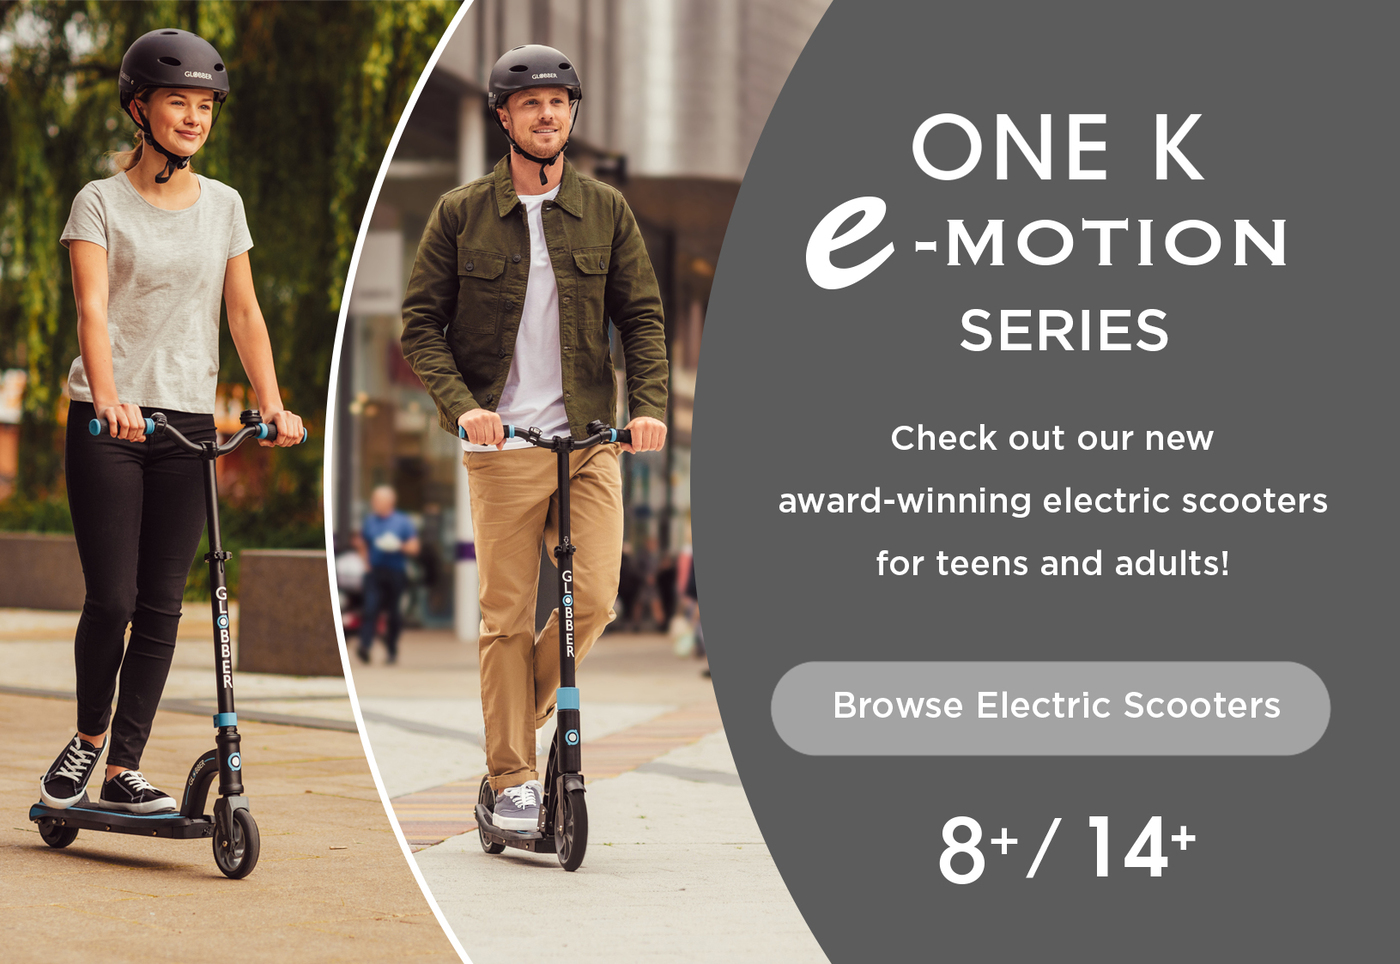 Check out our new award-winning electric scooters for teens and adults!